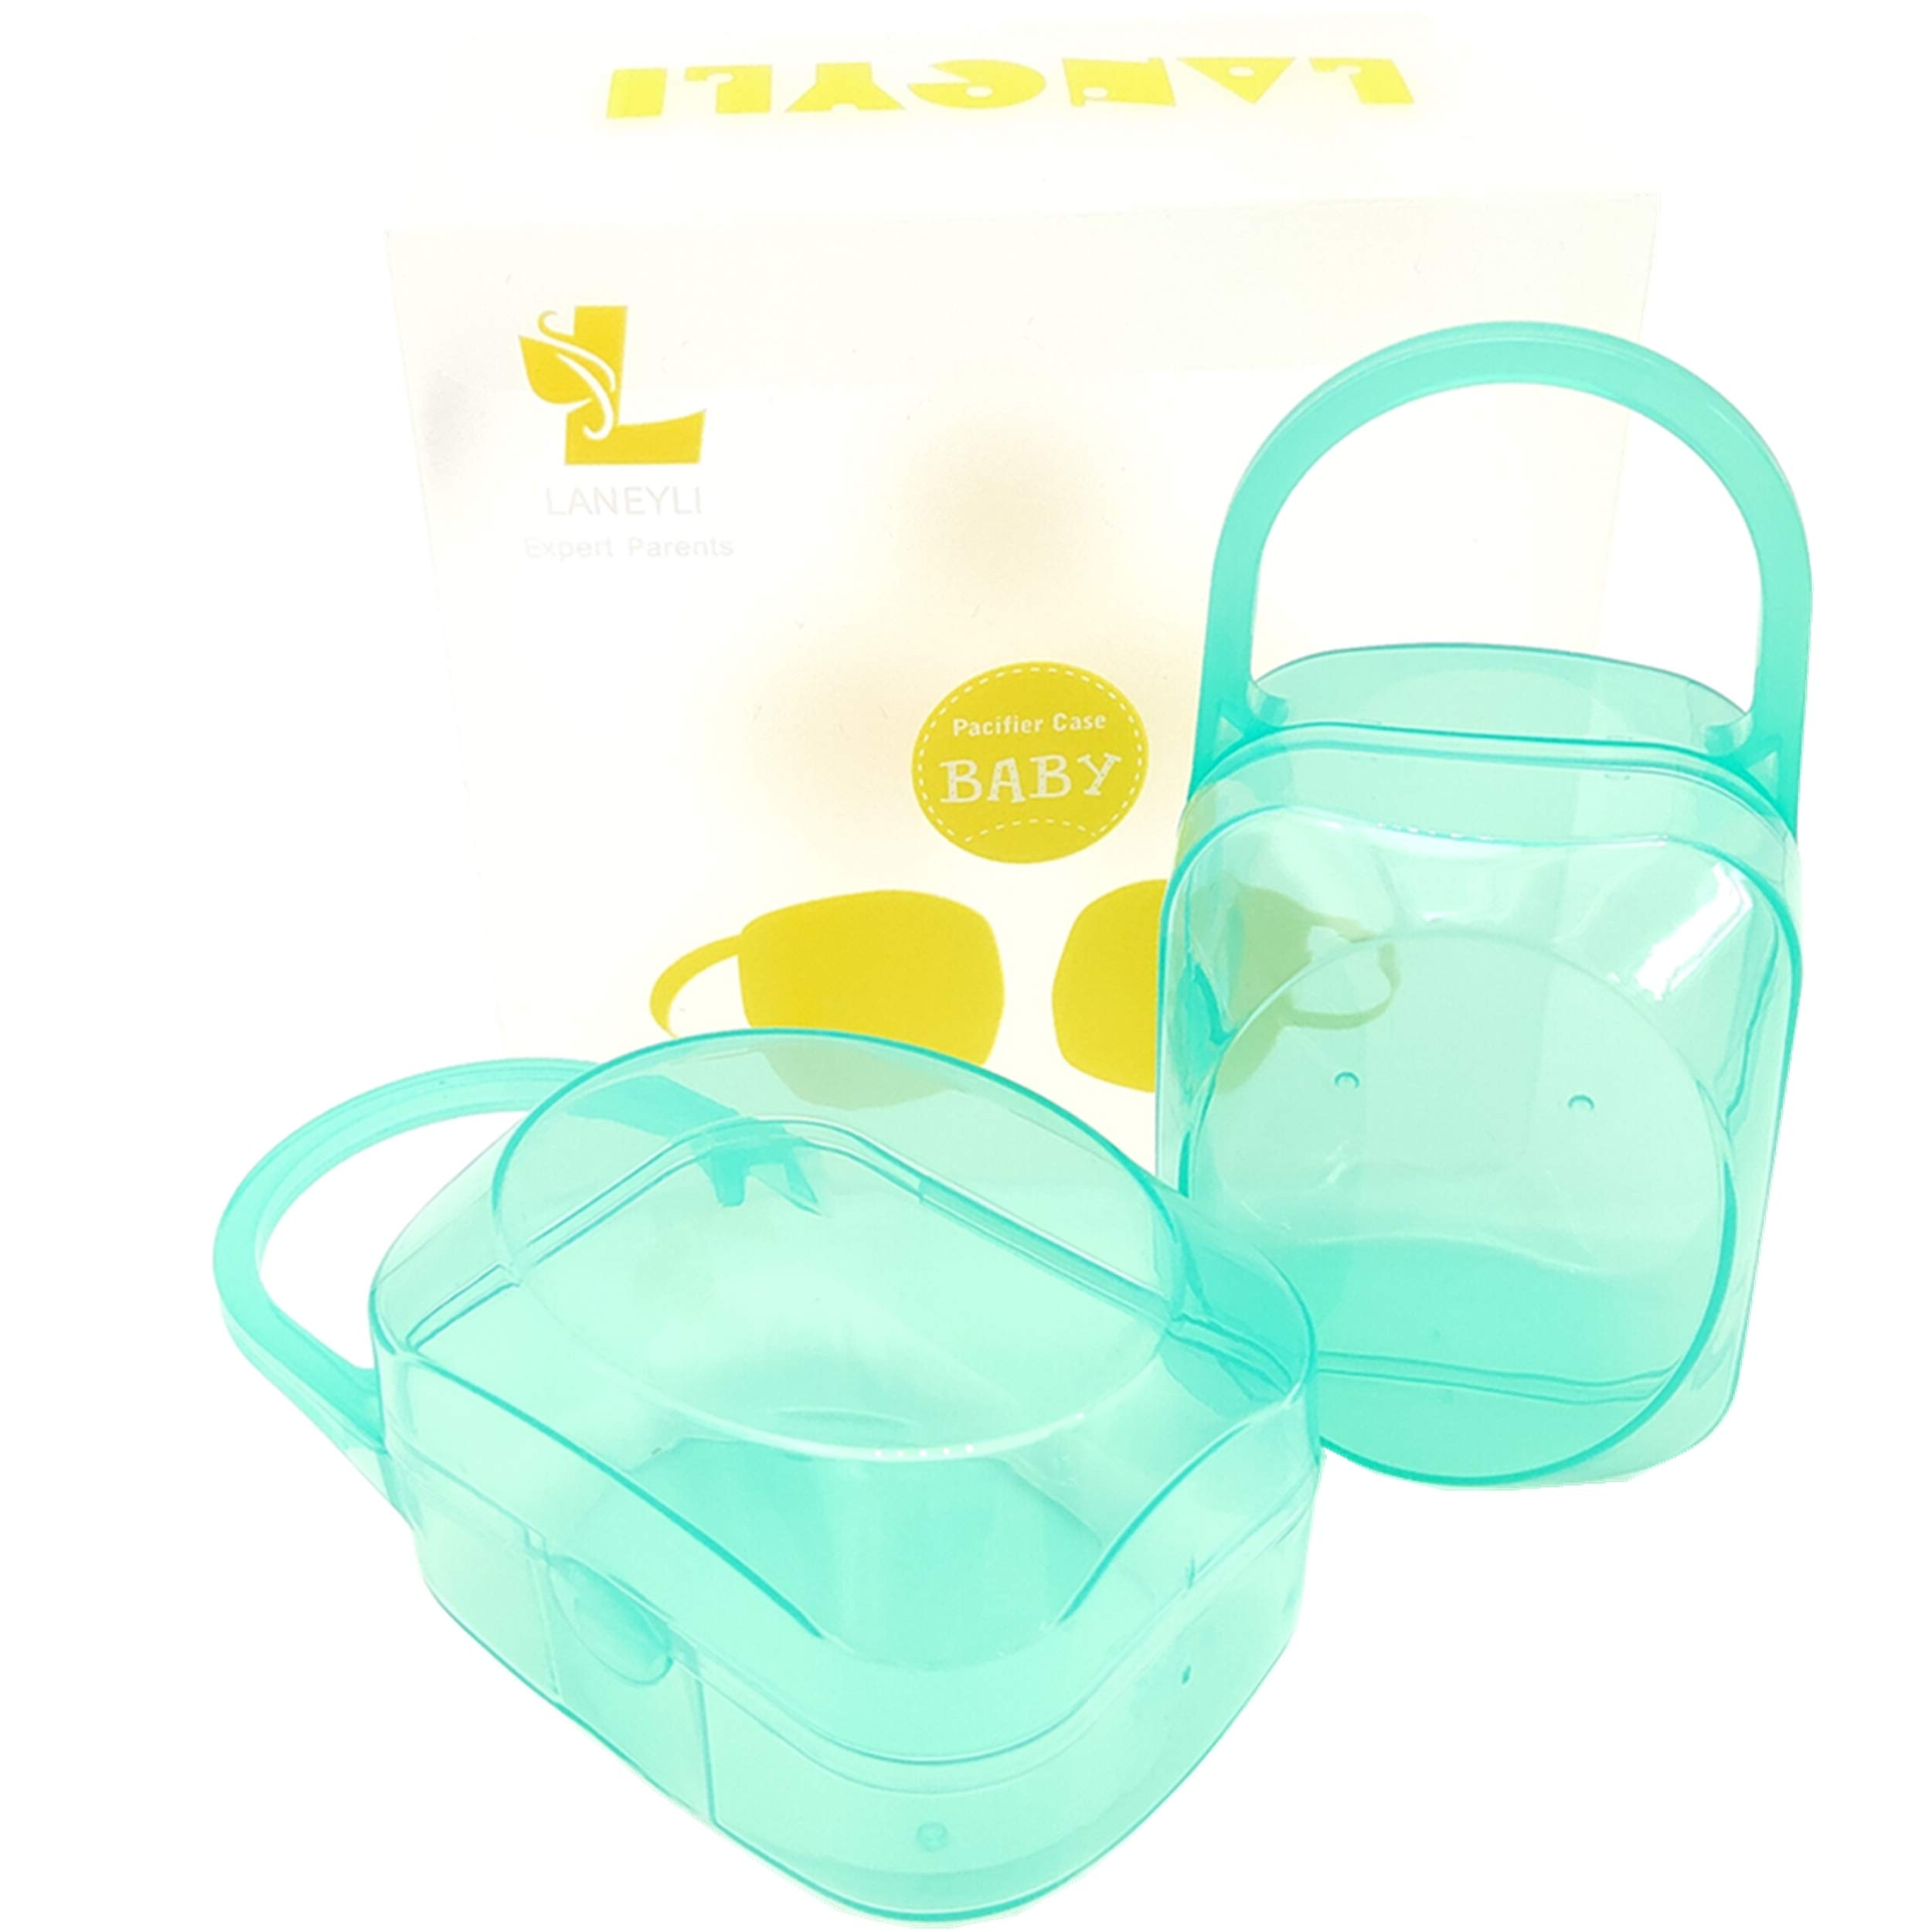 LANEYLI Pacifier Case Pacifier Holder Case Pacifier Clip Binky Holder Case Pacifier Box Pacifier Accessories 2 Pack, Green